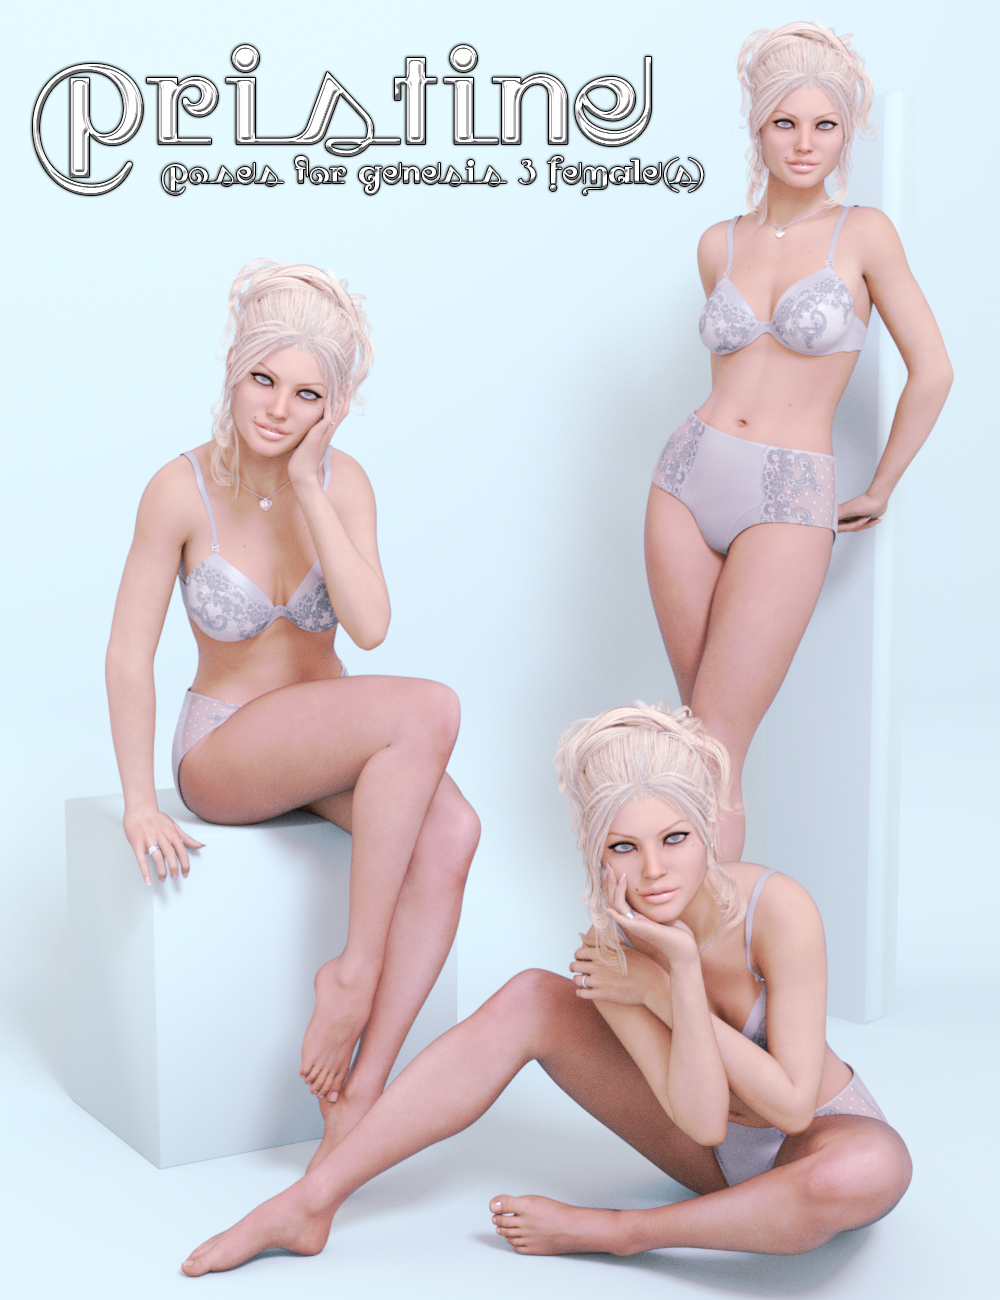 Pristine for Genesis 3 Female(s) by: lunchlady, 3D Models by Daz 3D